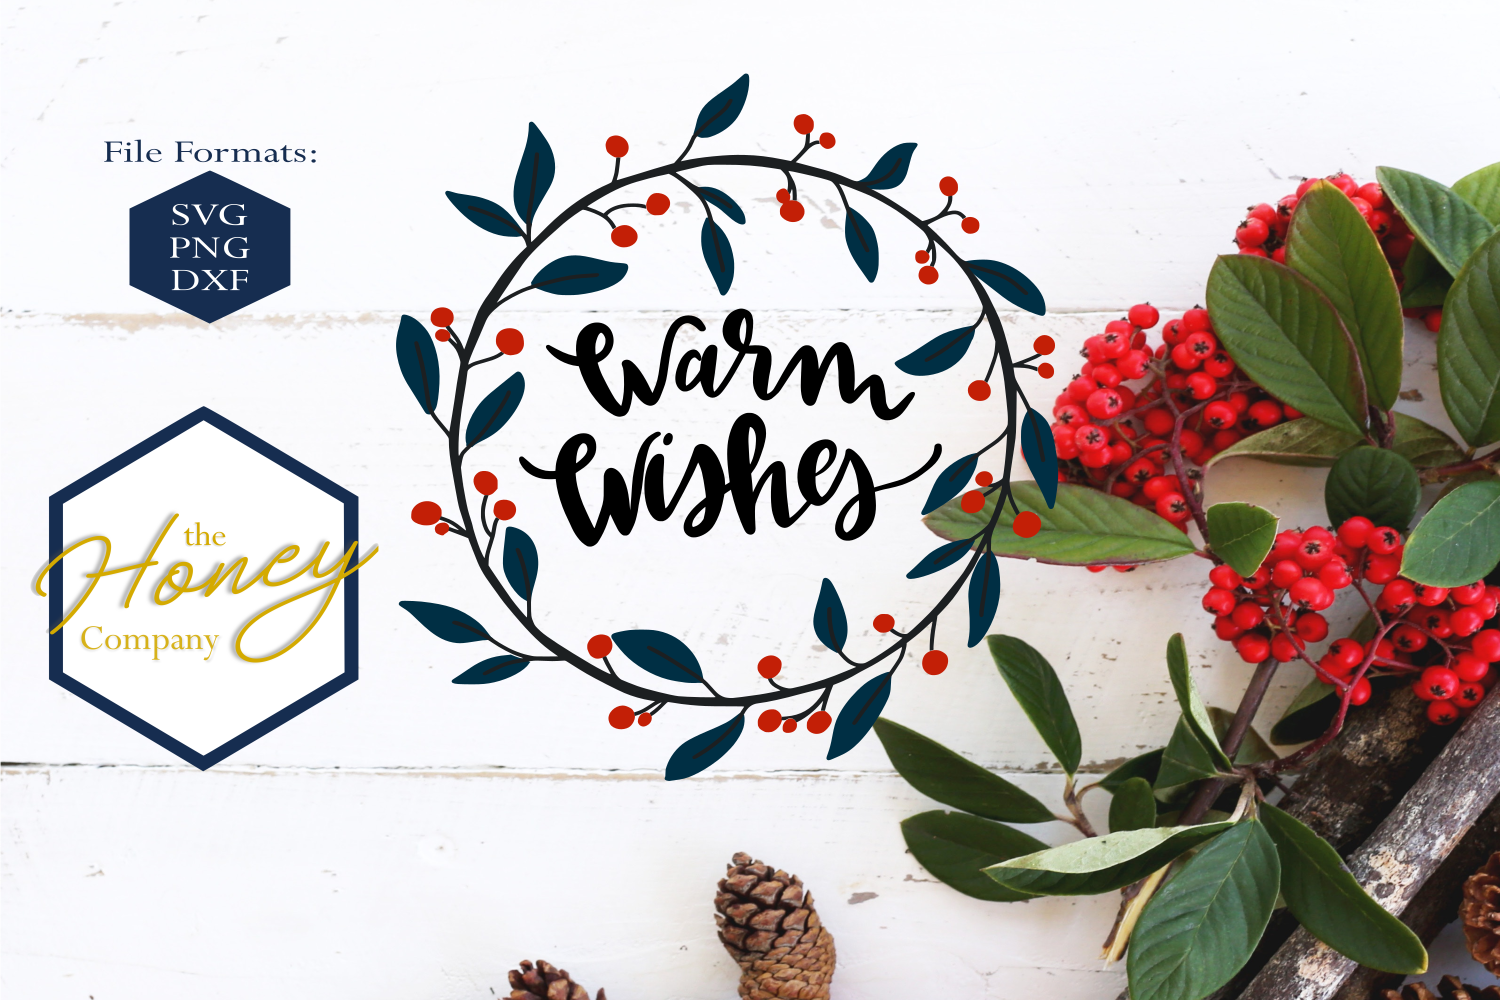 Download Free Warm Wishes Svg Graphic By The Honey Company Creative Fabrica for Cricut Explore, Silhouette and other cutting machines.